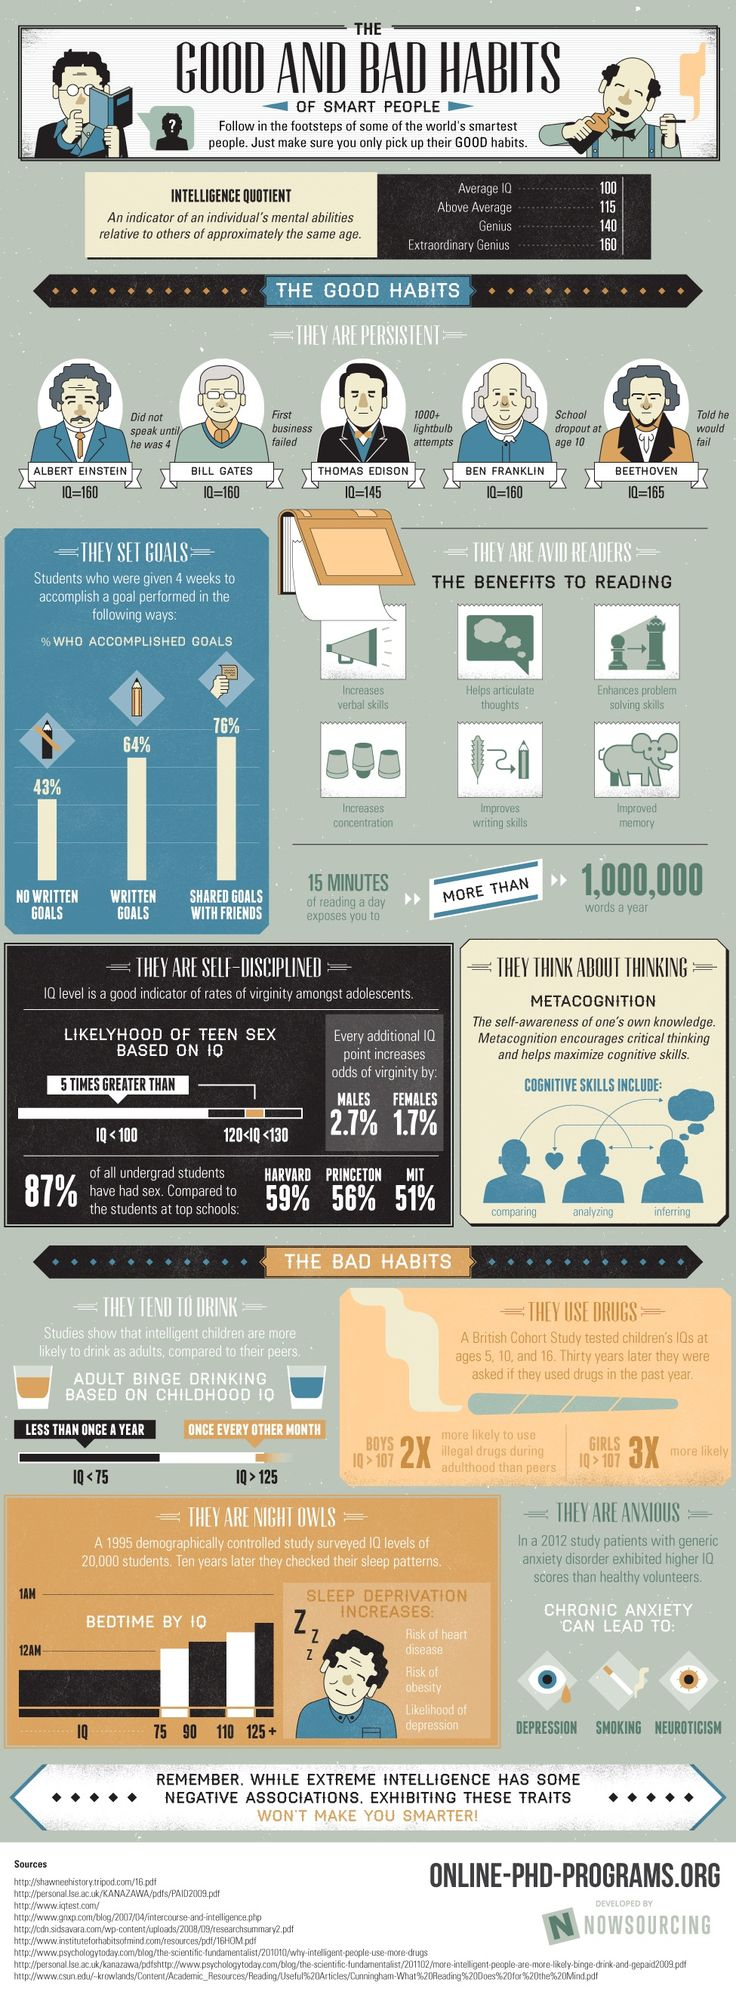 This Infographic Displays Both The Good and Bad Habits of People With High IQ's